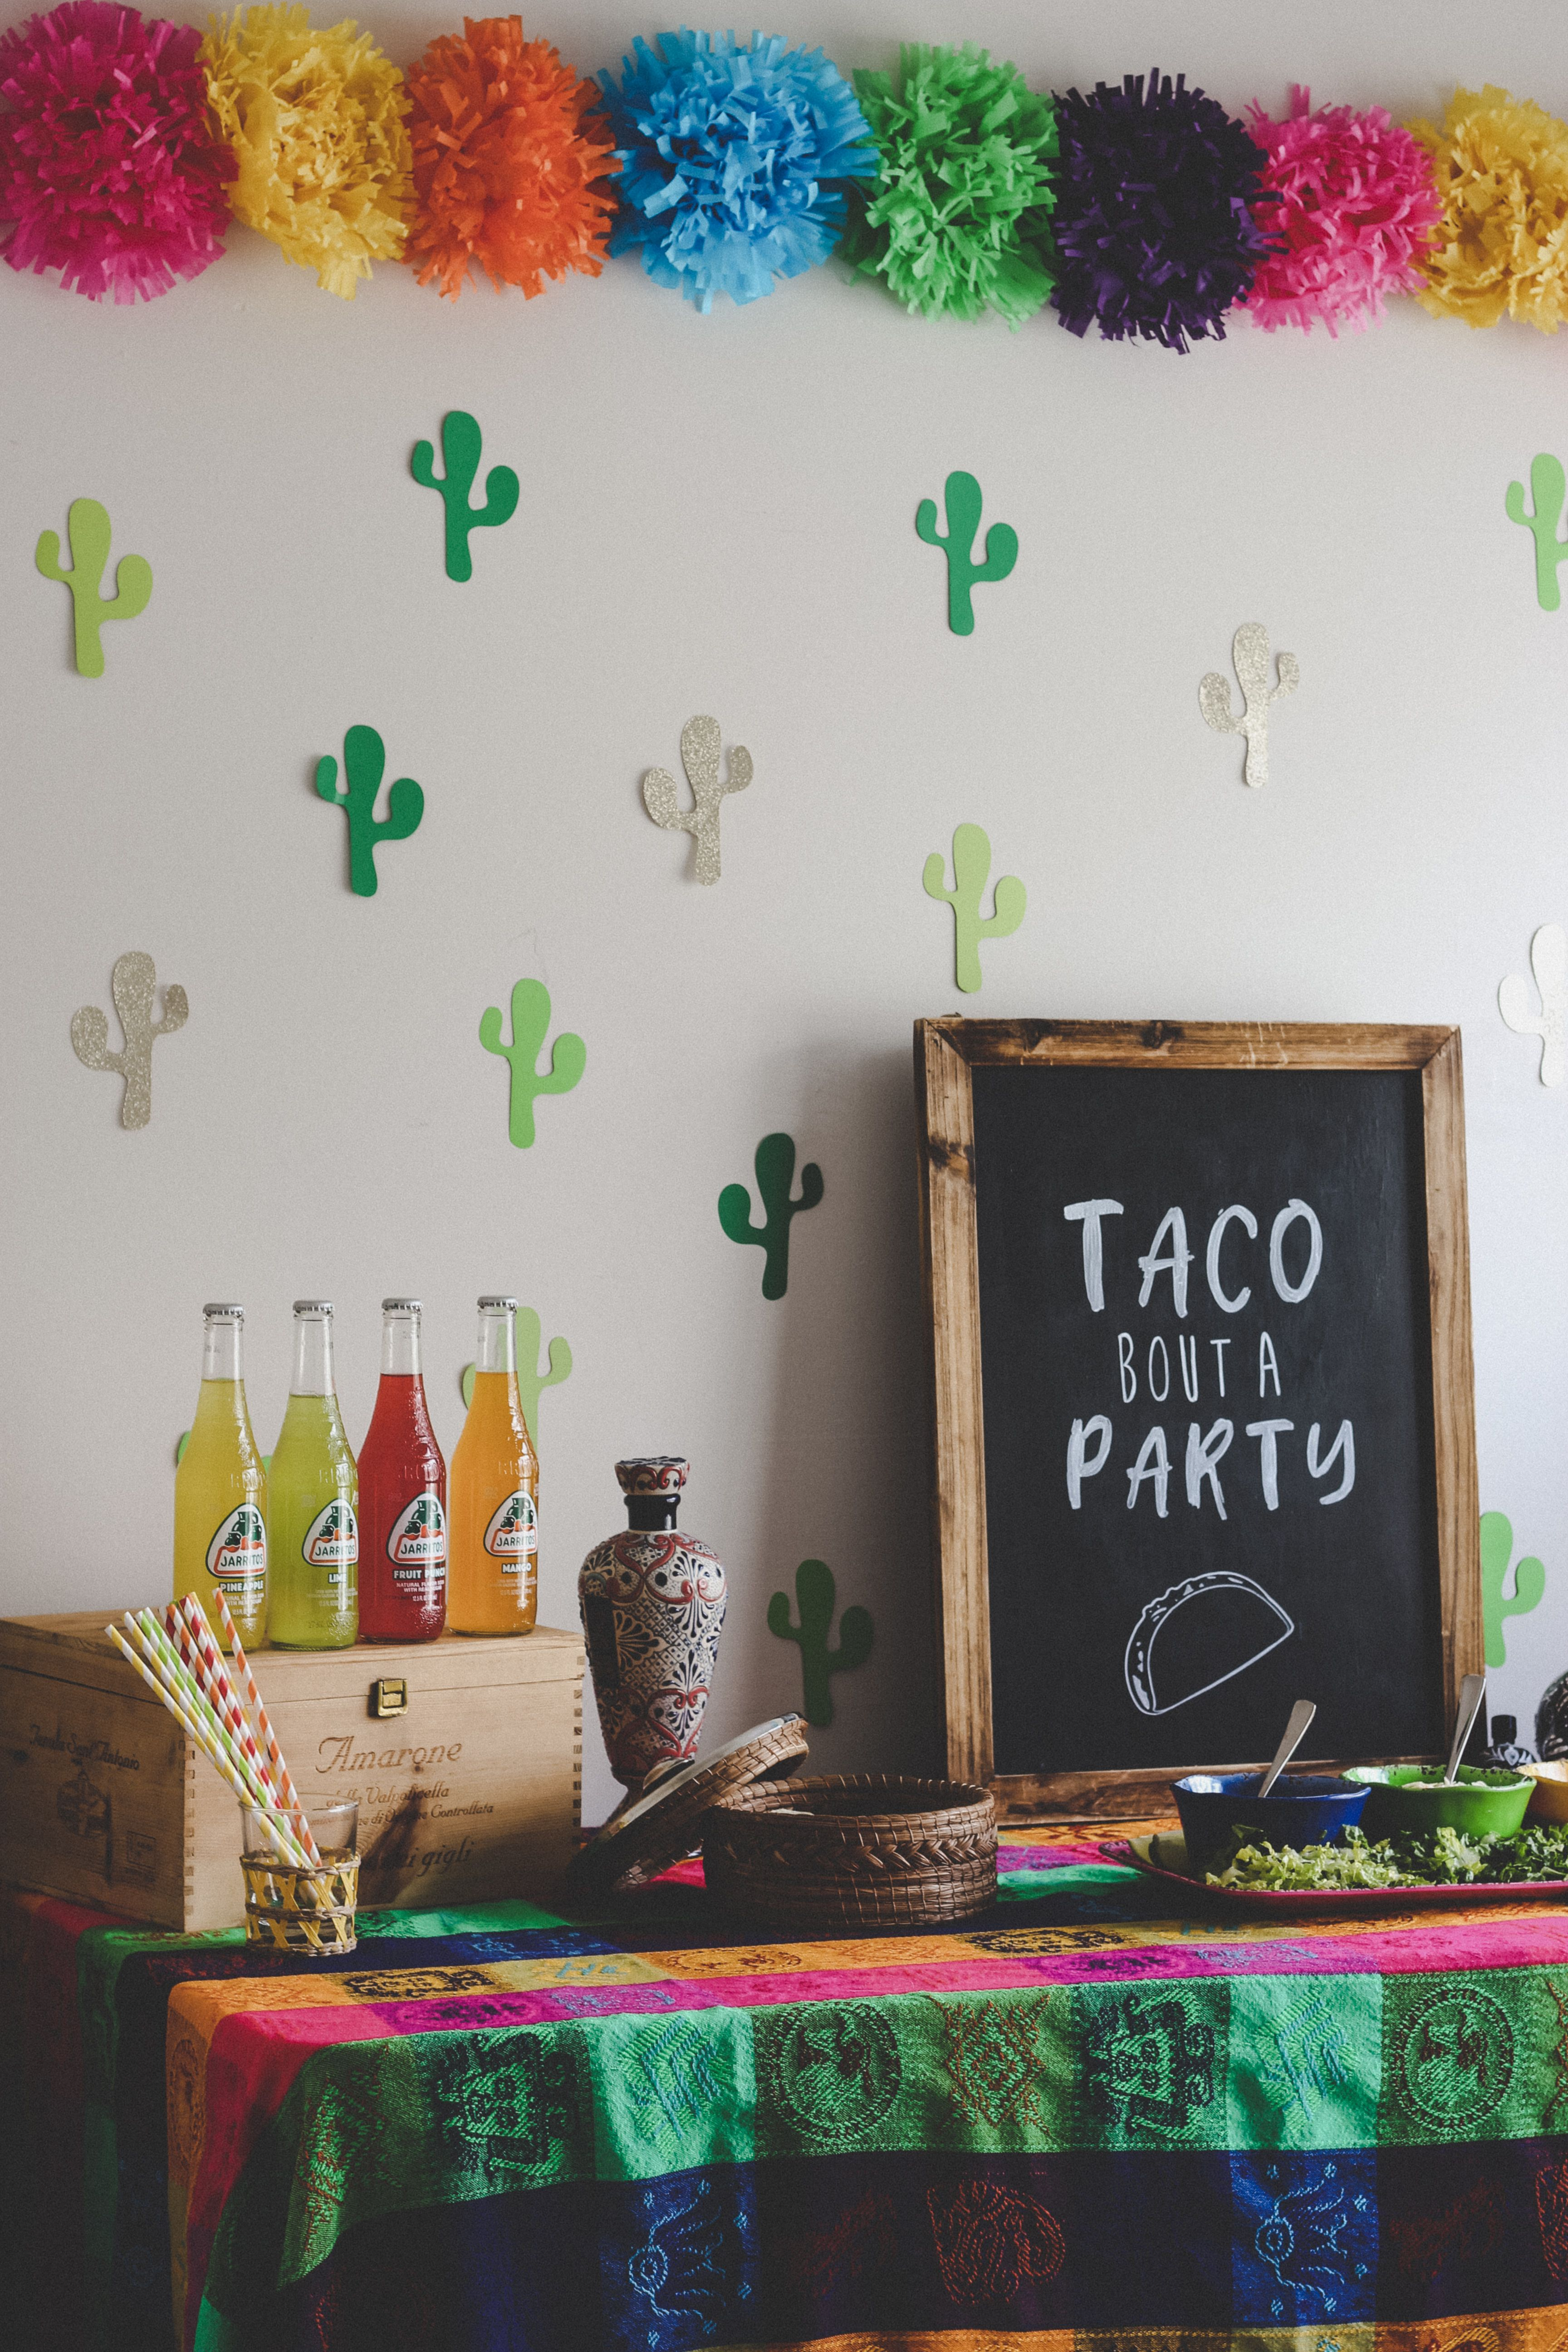 Simple Steps To Throw The Best Cinco De Mayo Fiesta Party Cinco De Mayo Party Decorations Mexican Party Theme Mexican Party Decorations